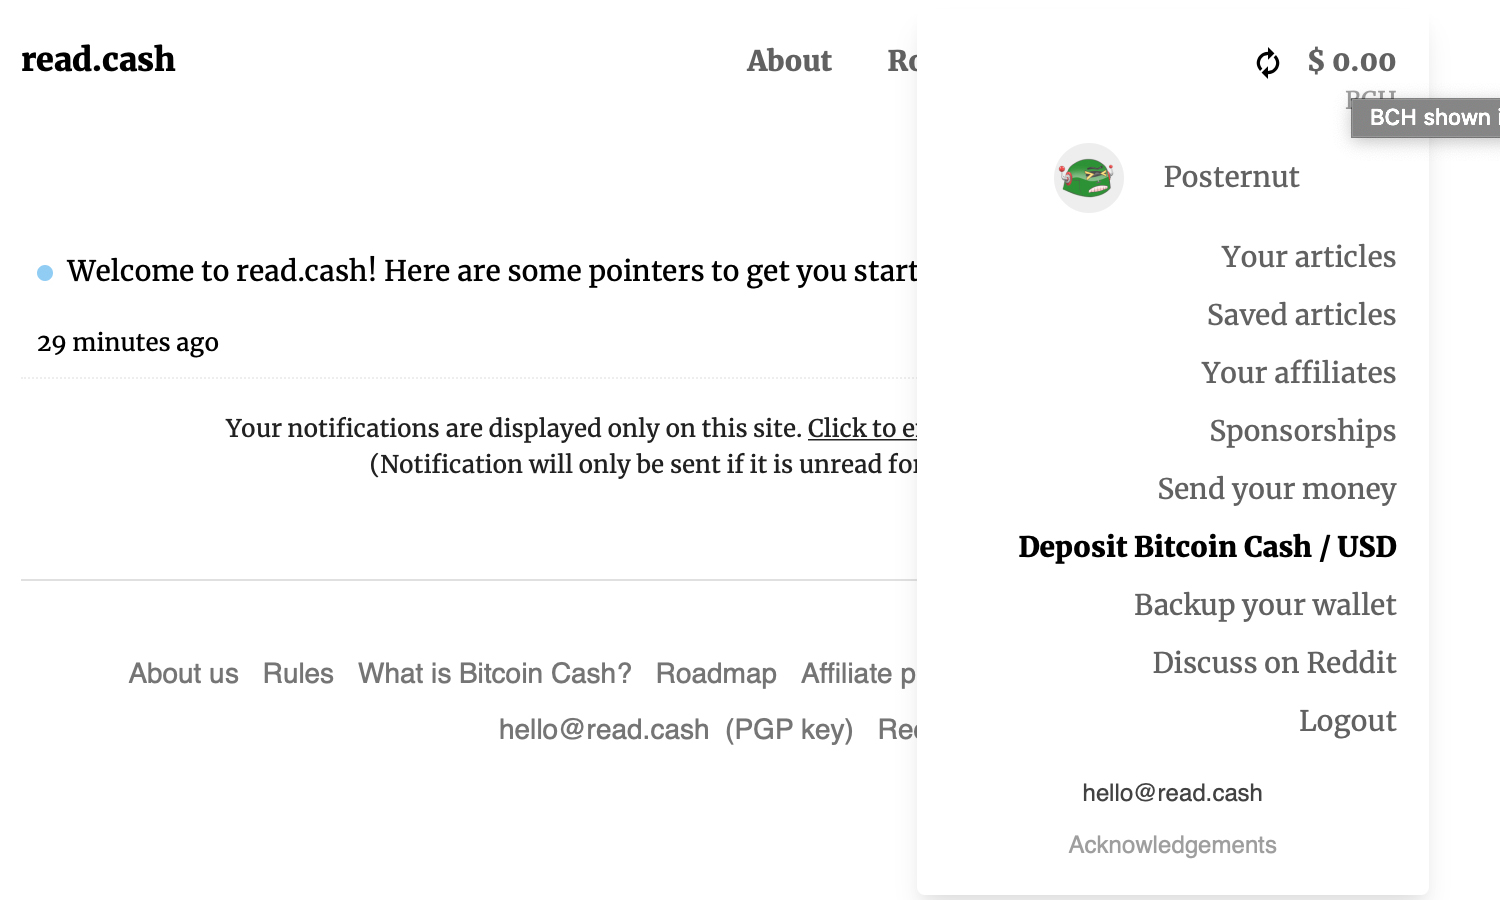 Read.cash Platform Rewards Content Creators With Bitcoin Cash Incentives